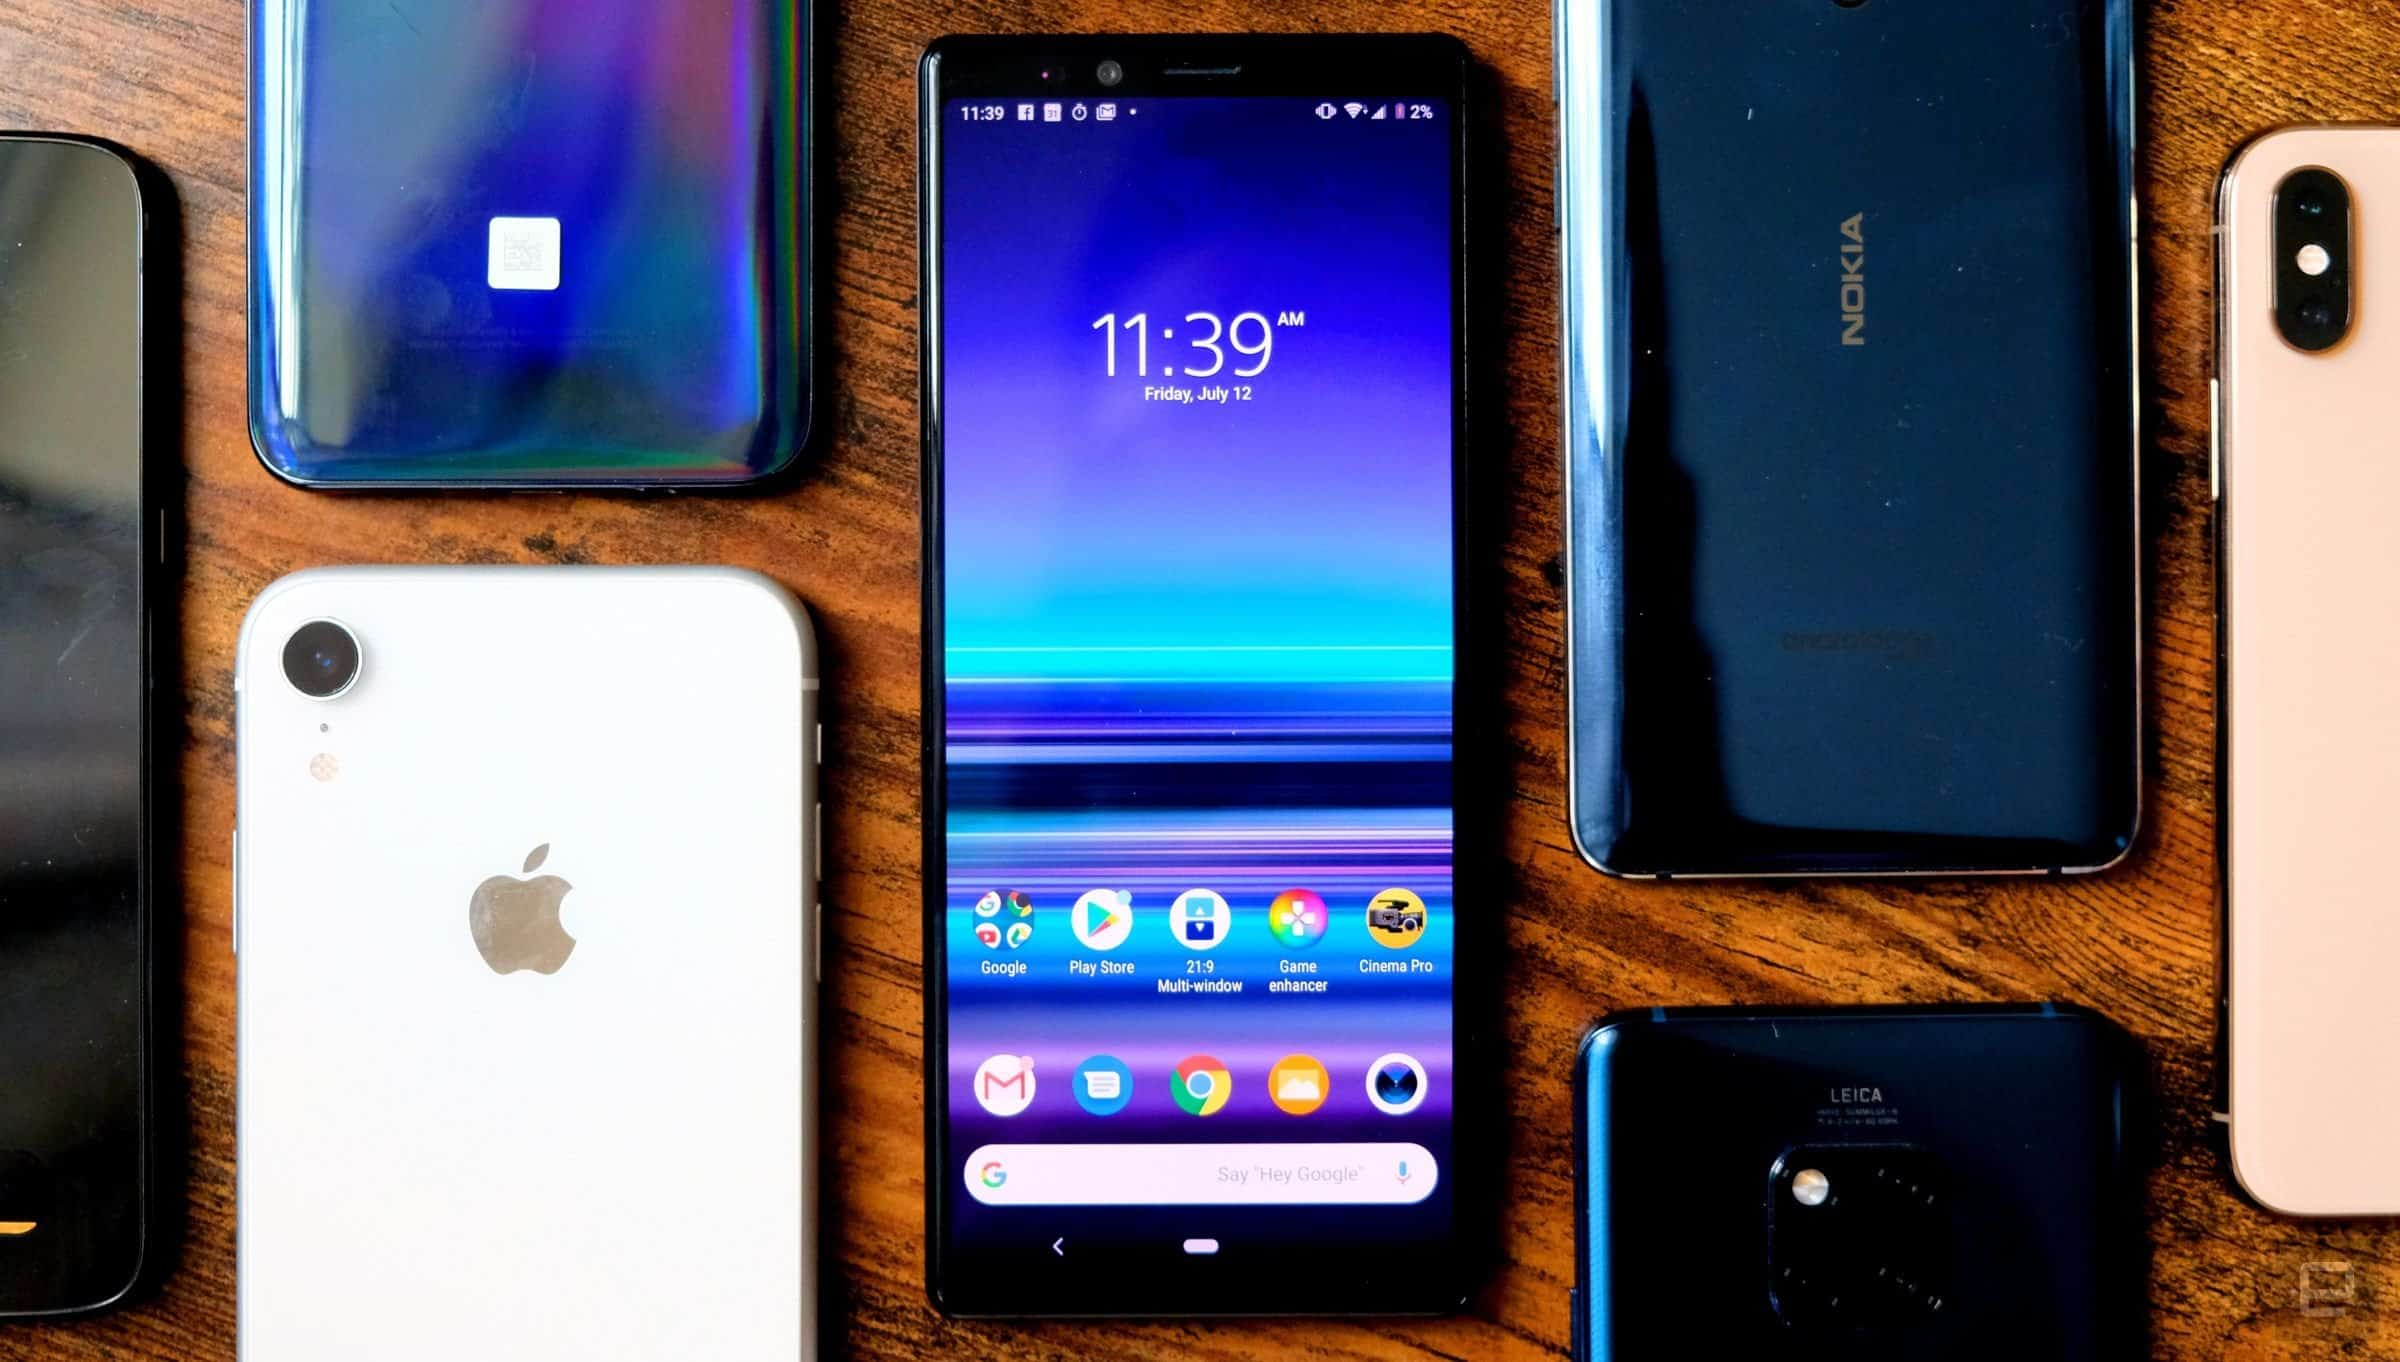 Upcoming Xperia phone could beat Apple's iPhone 11 in terms of performance